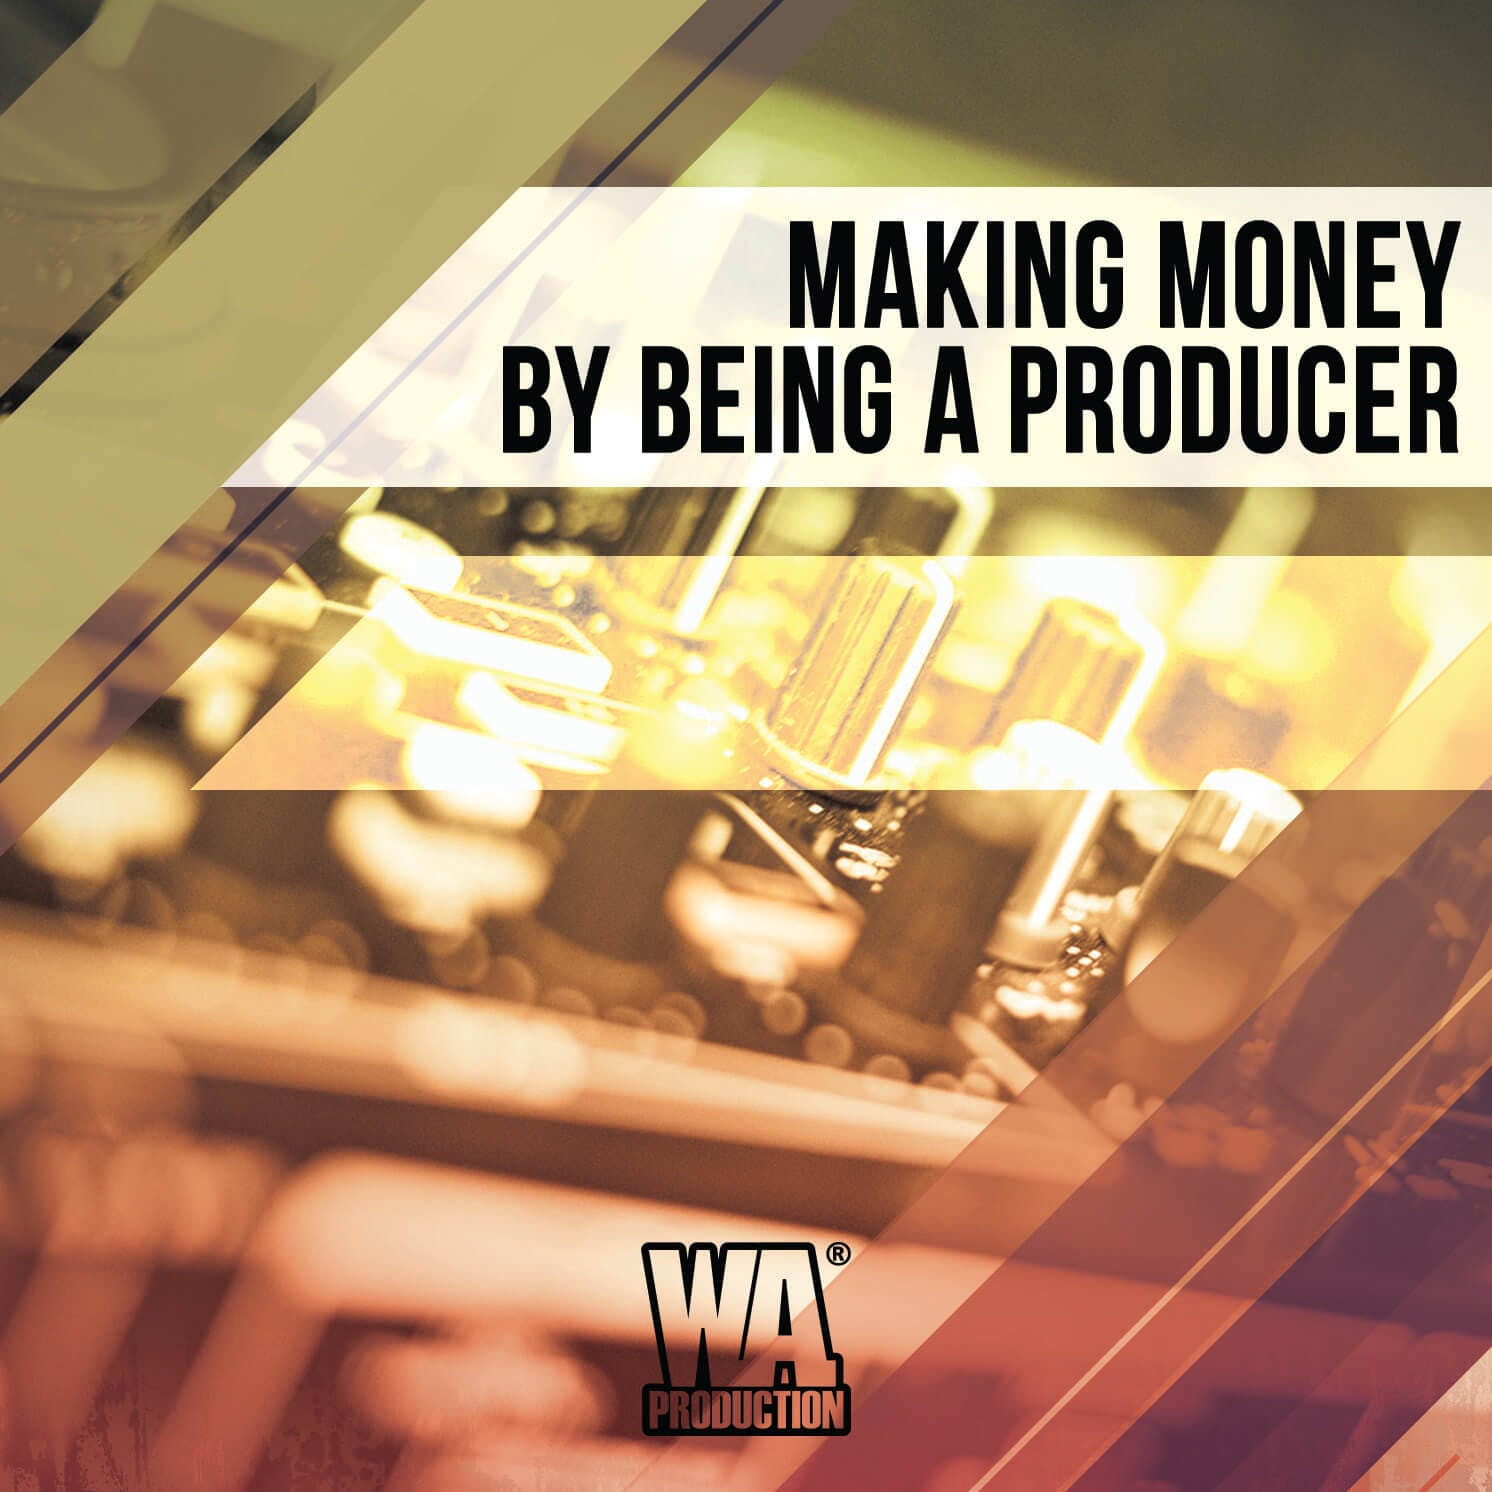 Making Money By Being a Producer